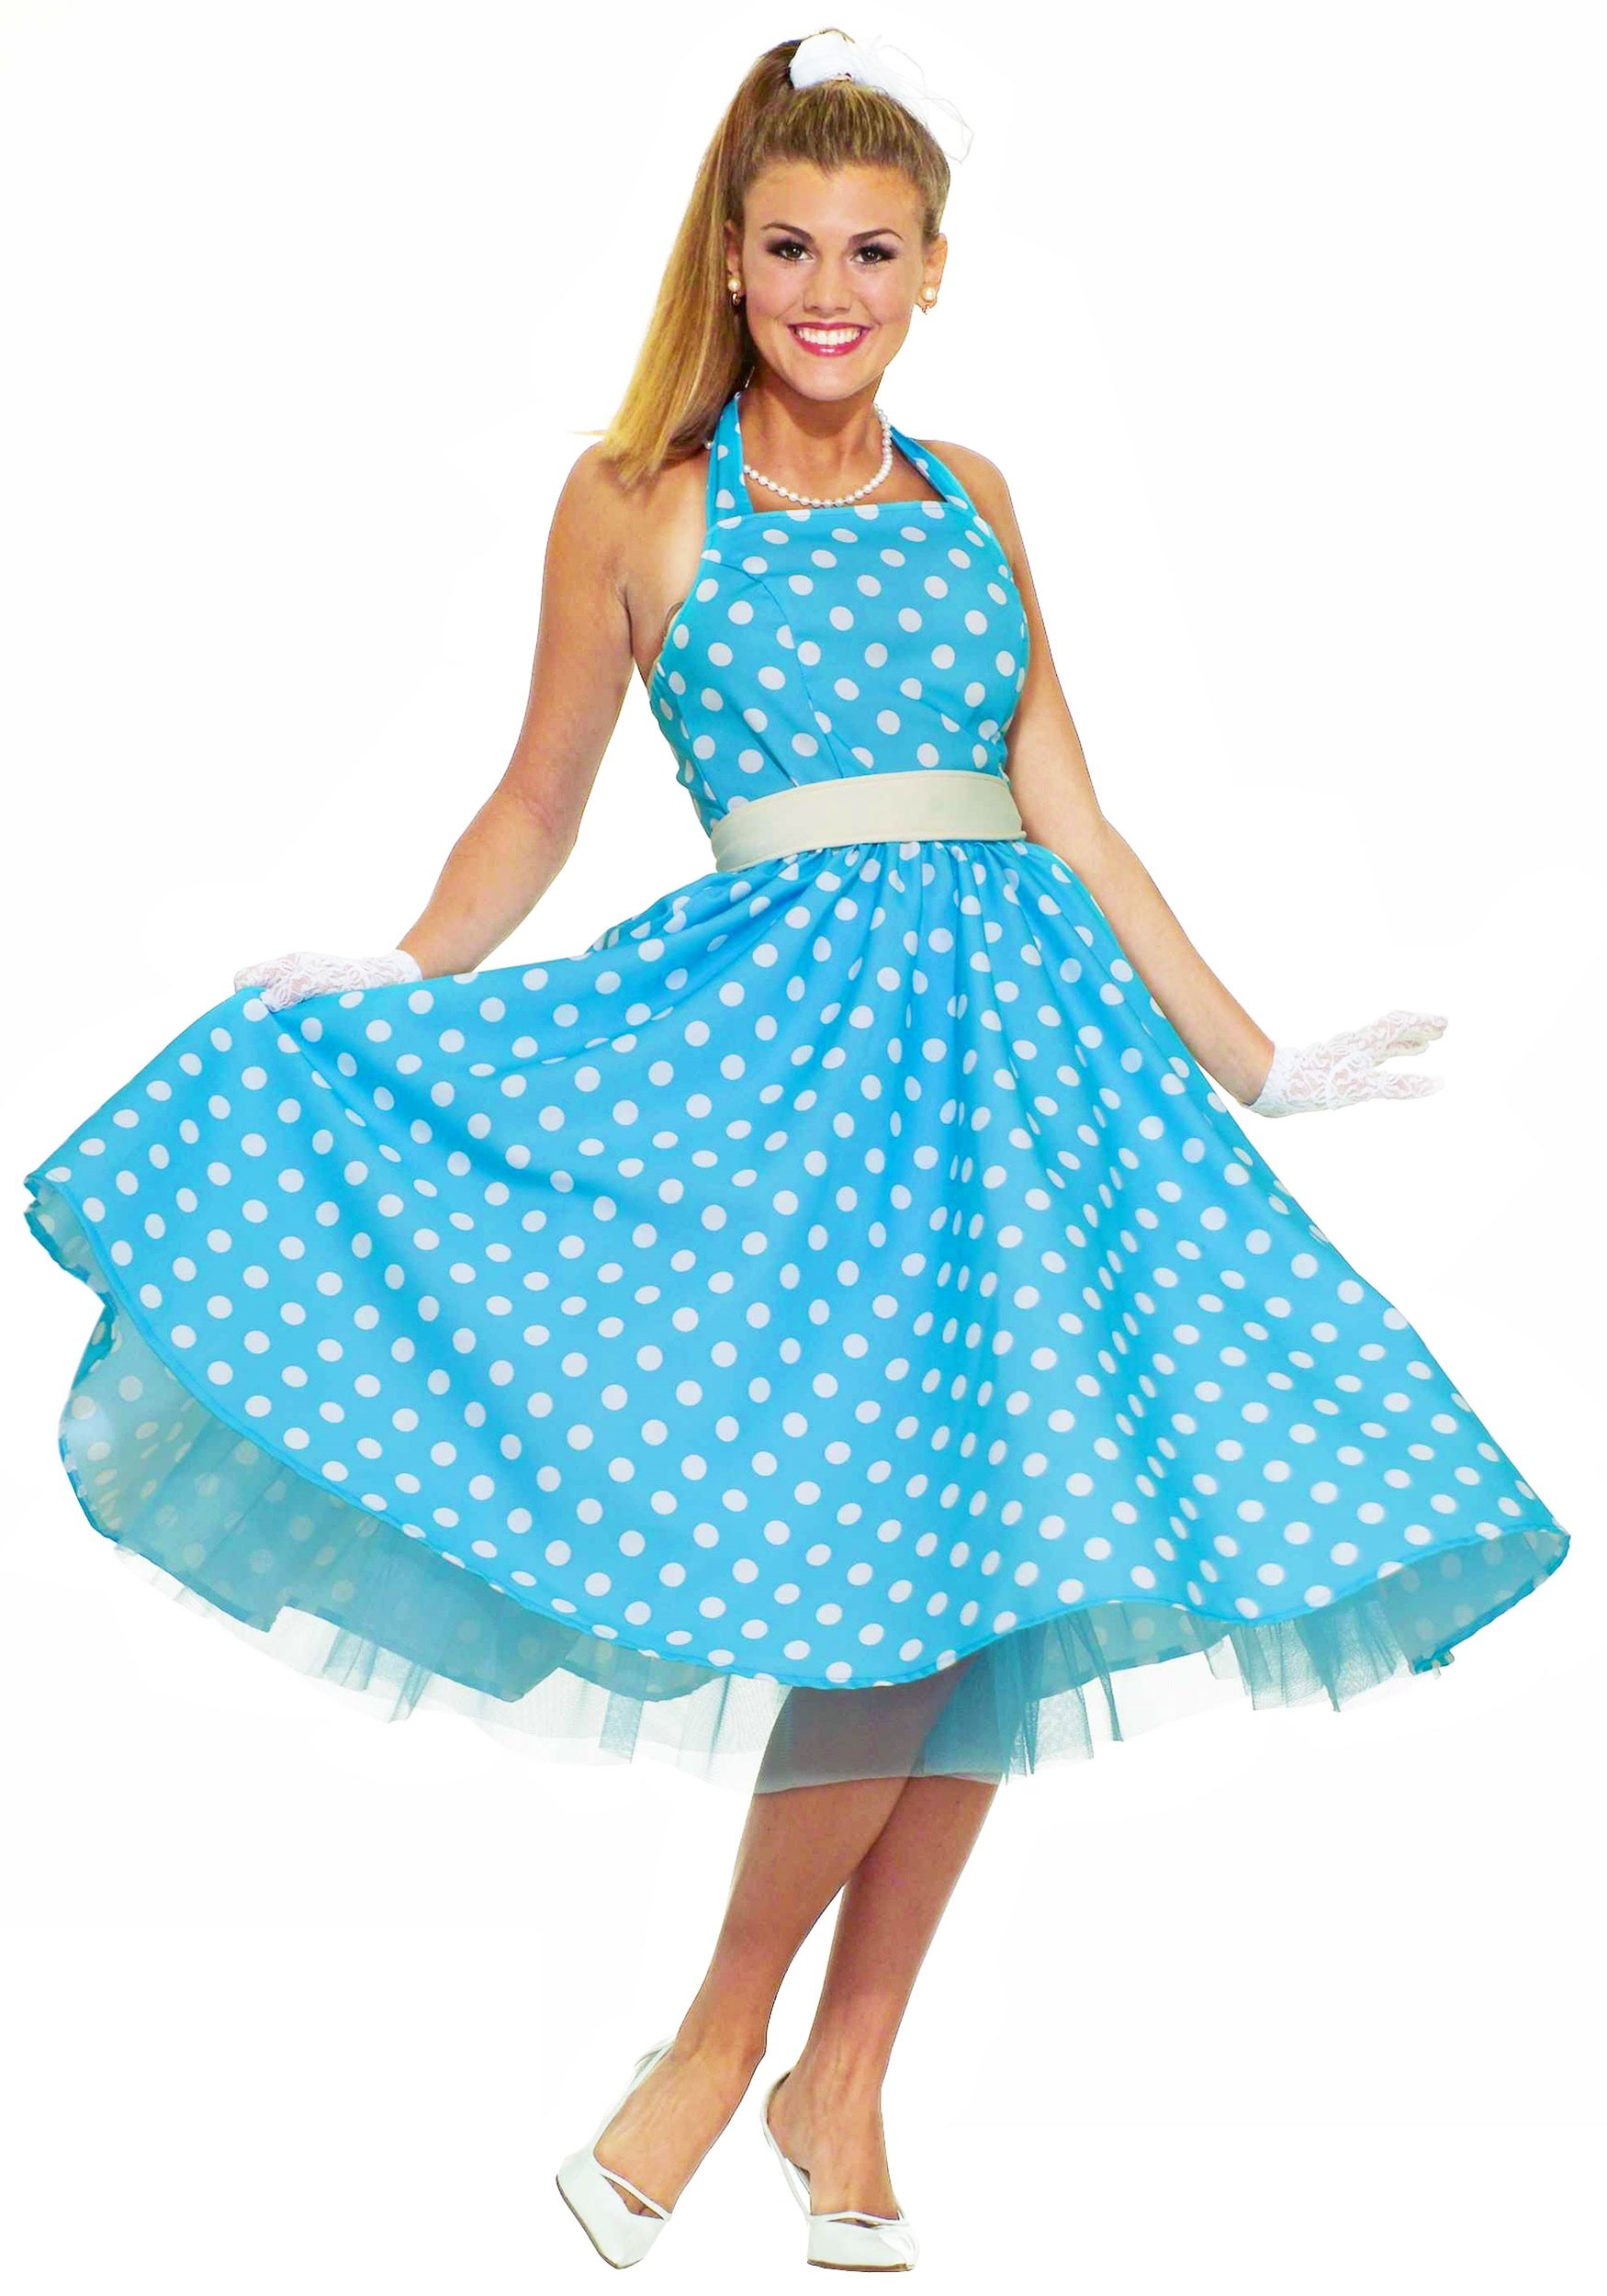 Sock hop dress images